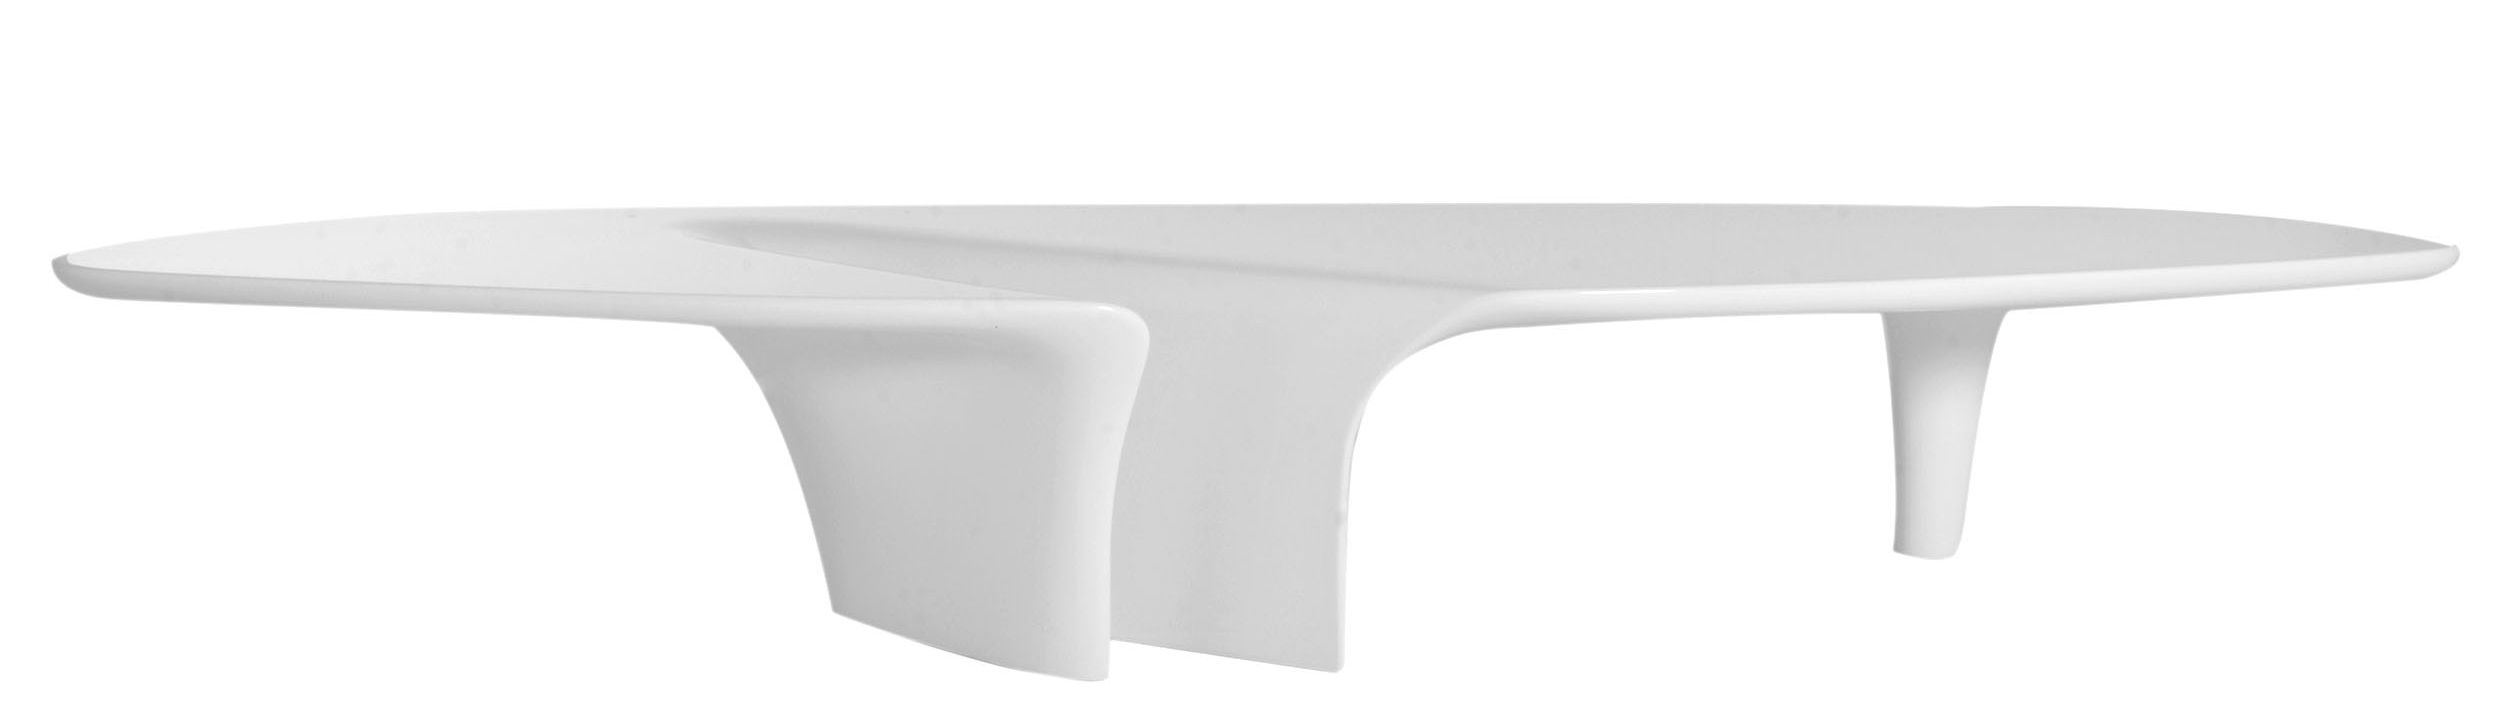 Furniture - Coffee Tables - Waterfall Coffee table by Driade - White - Polyurethane